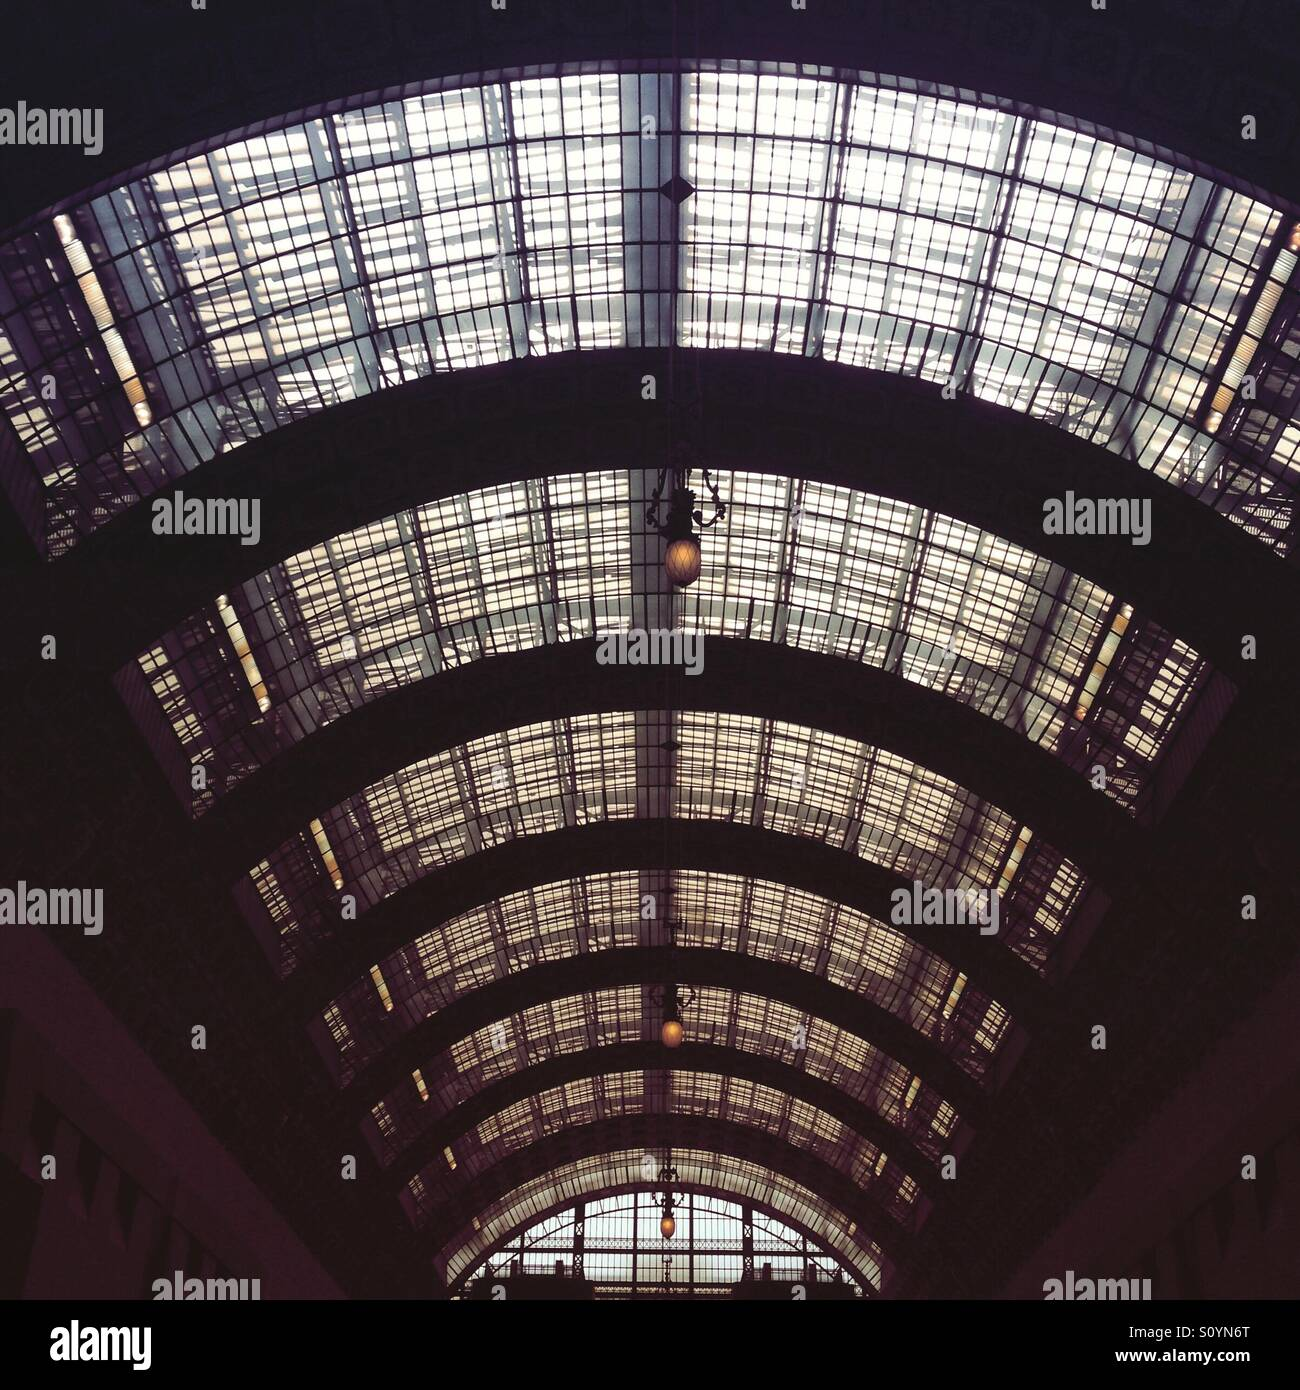 The glass roof of the Musee D'Orsay, Paris - Stock Image